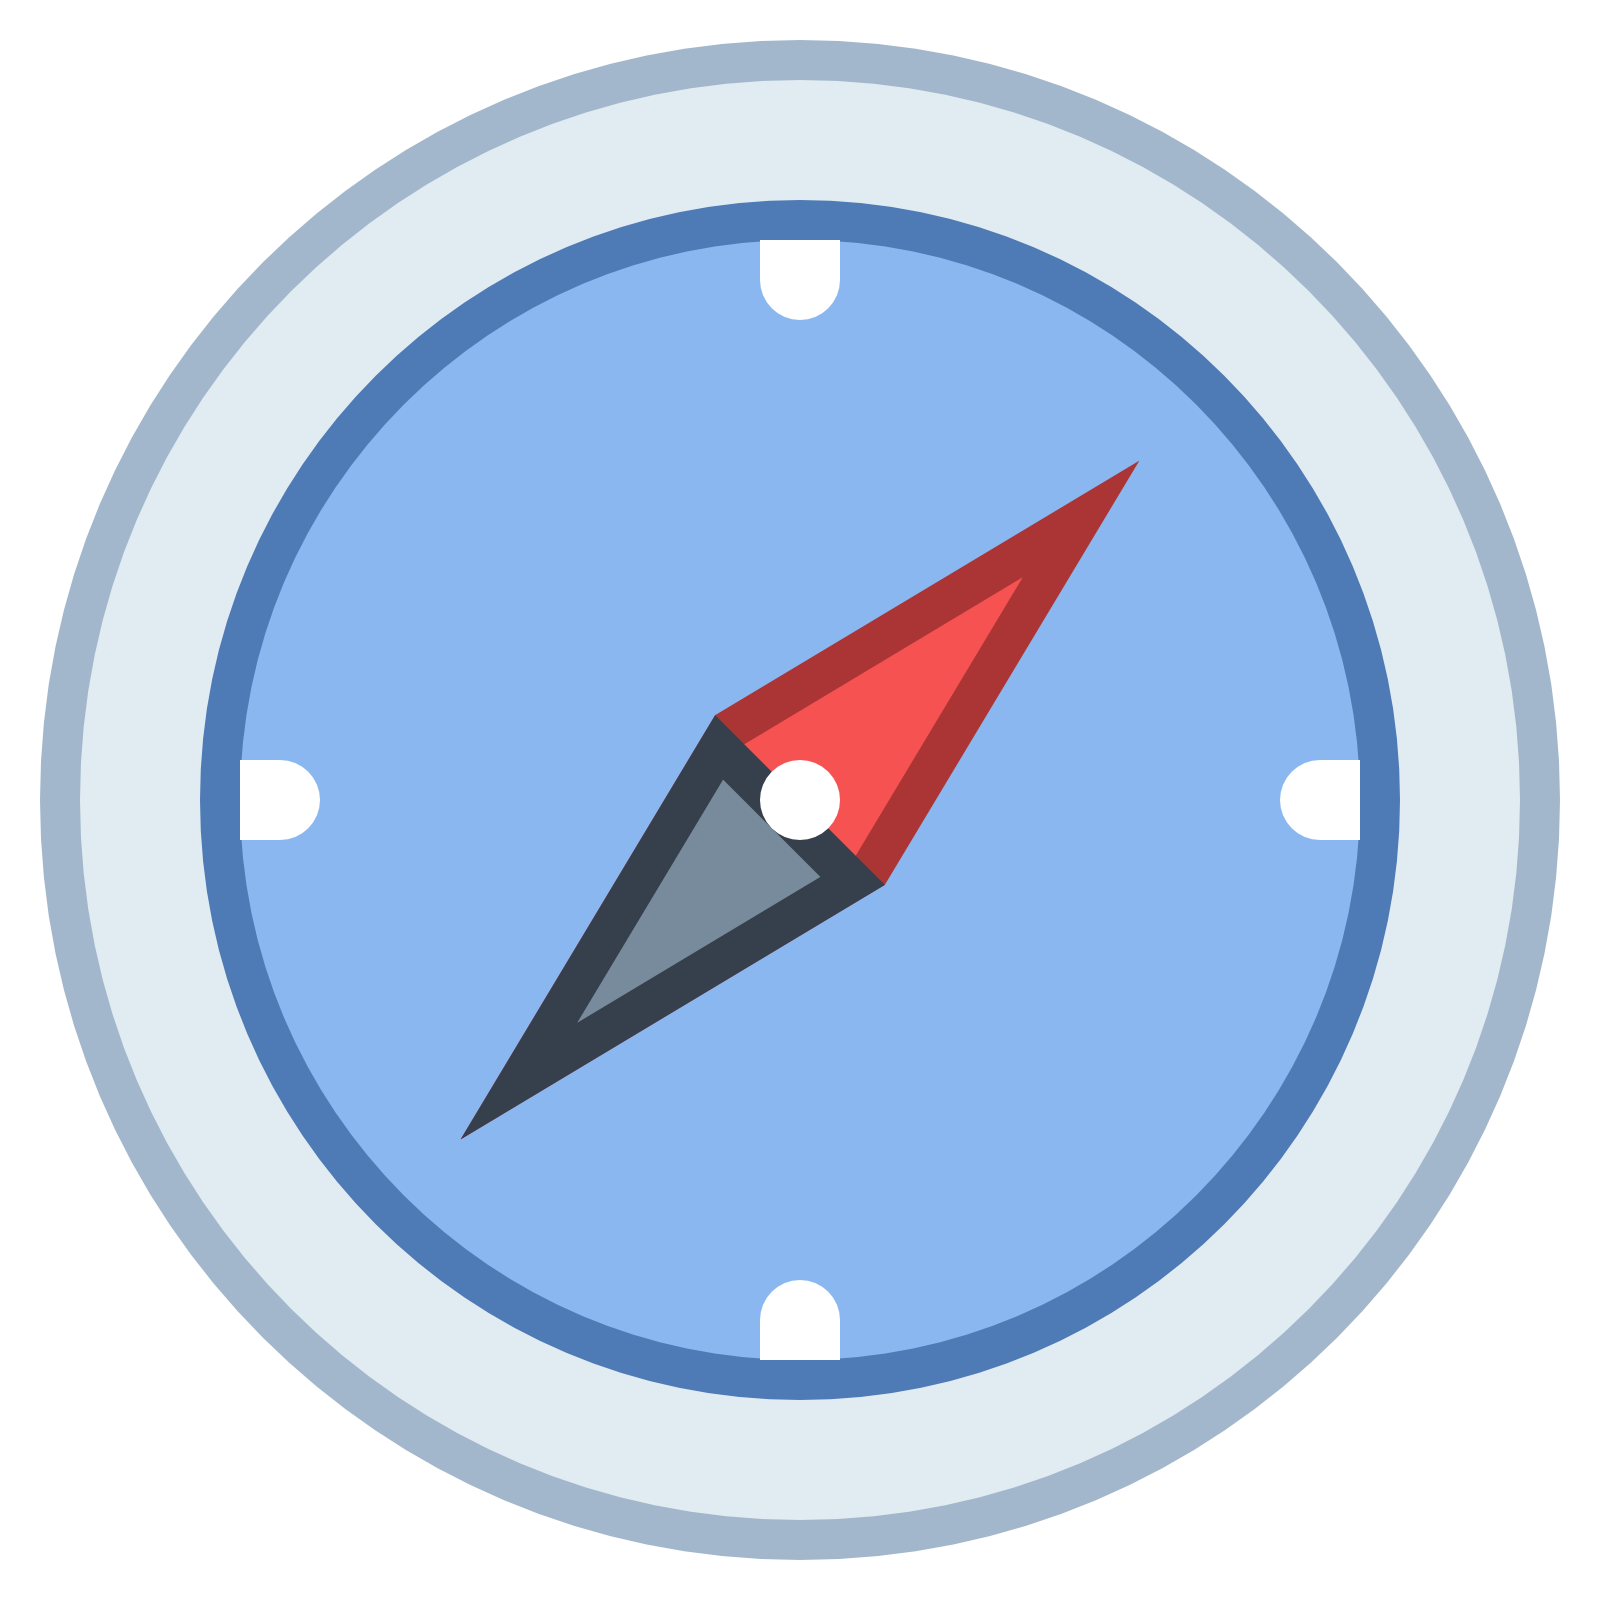 North computer icons google. Compass clipart black and white